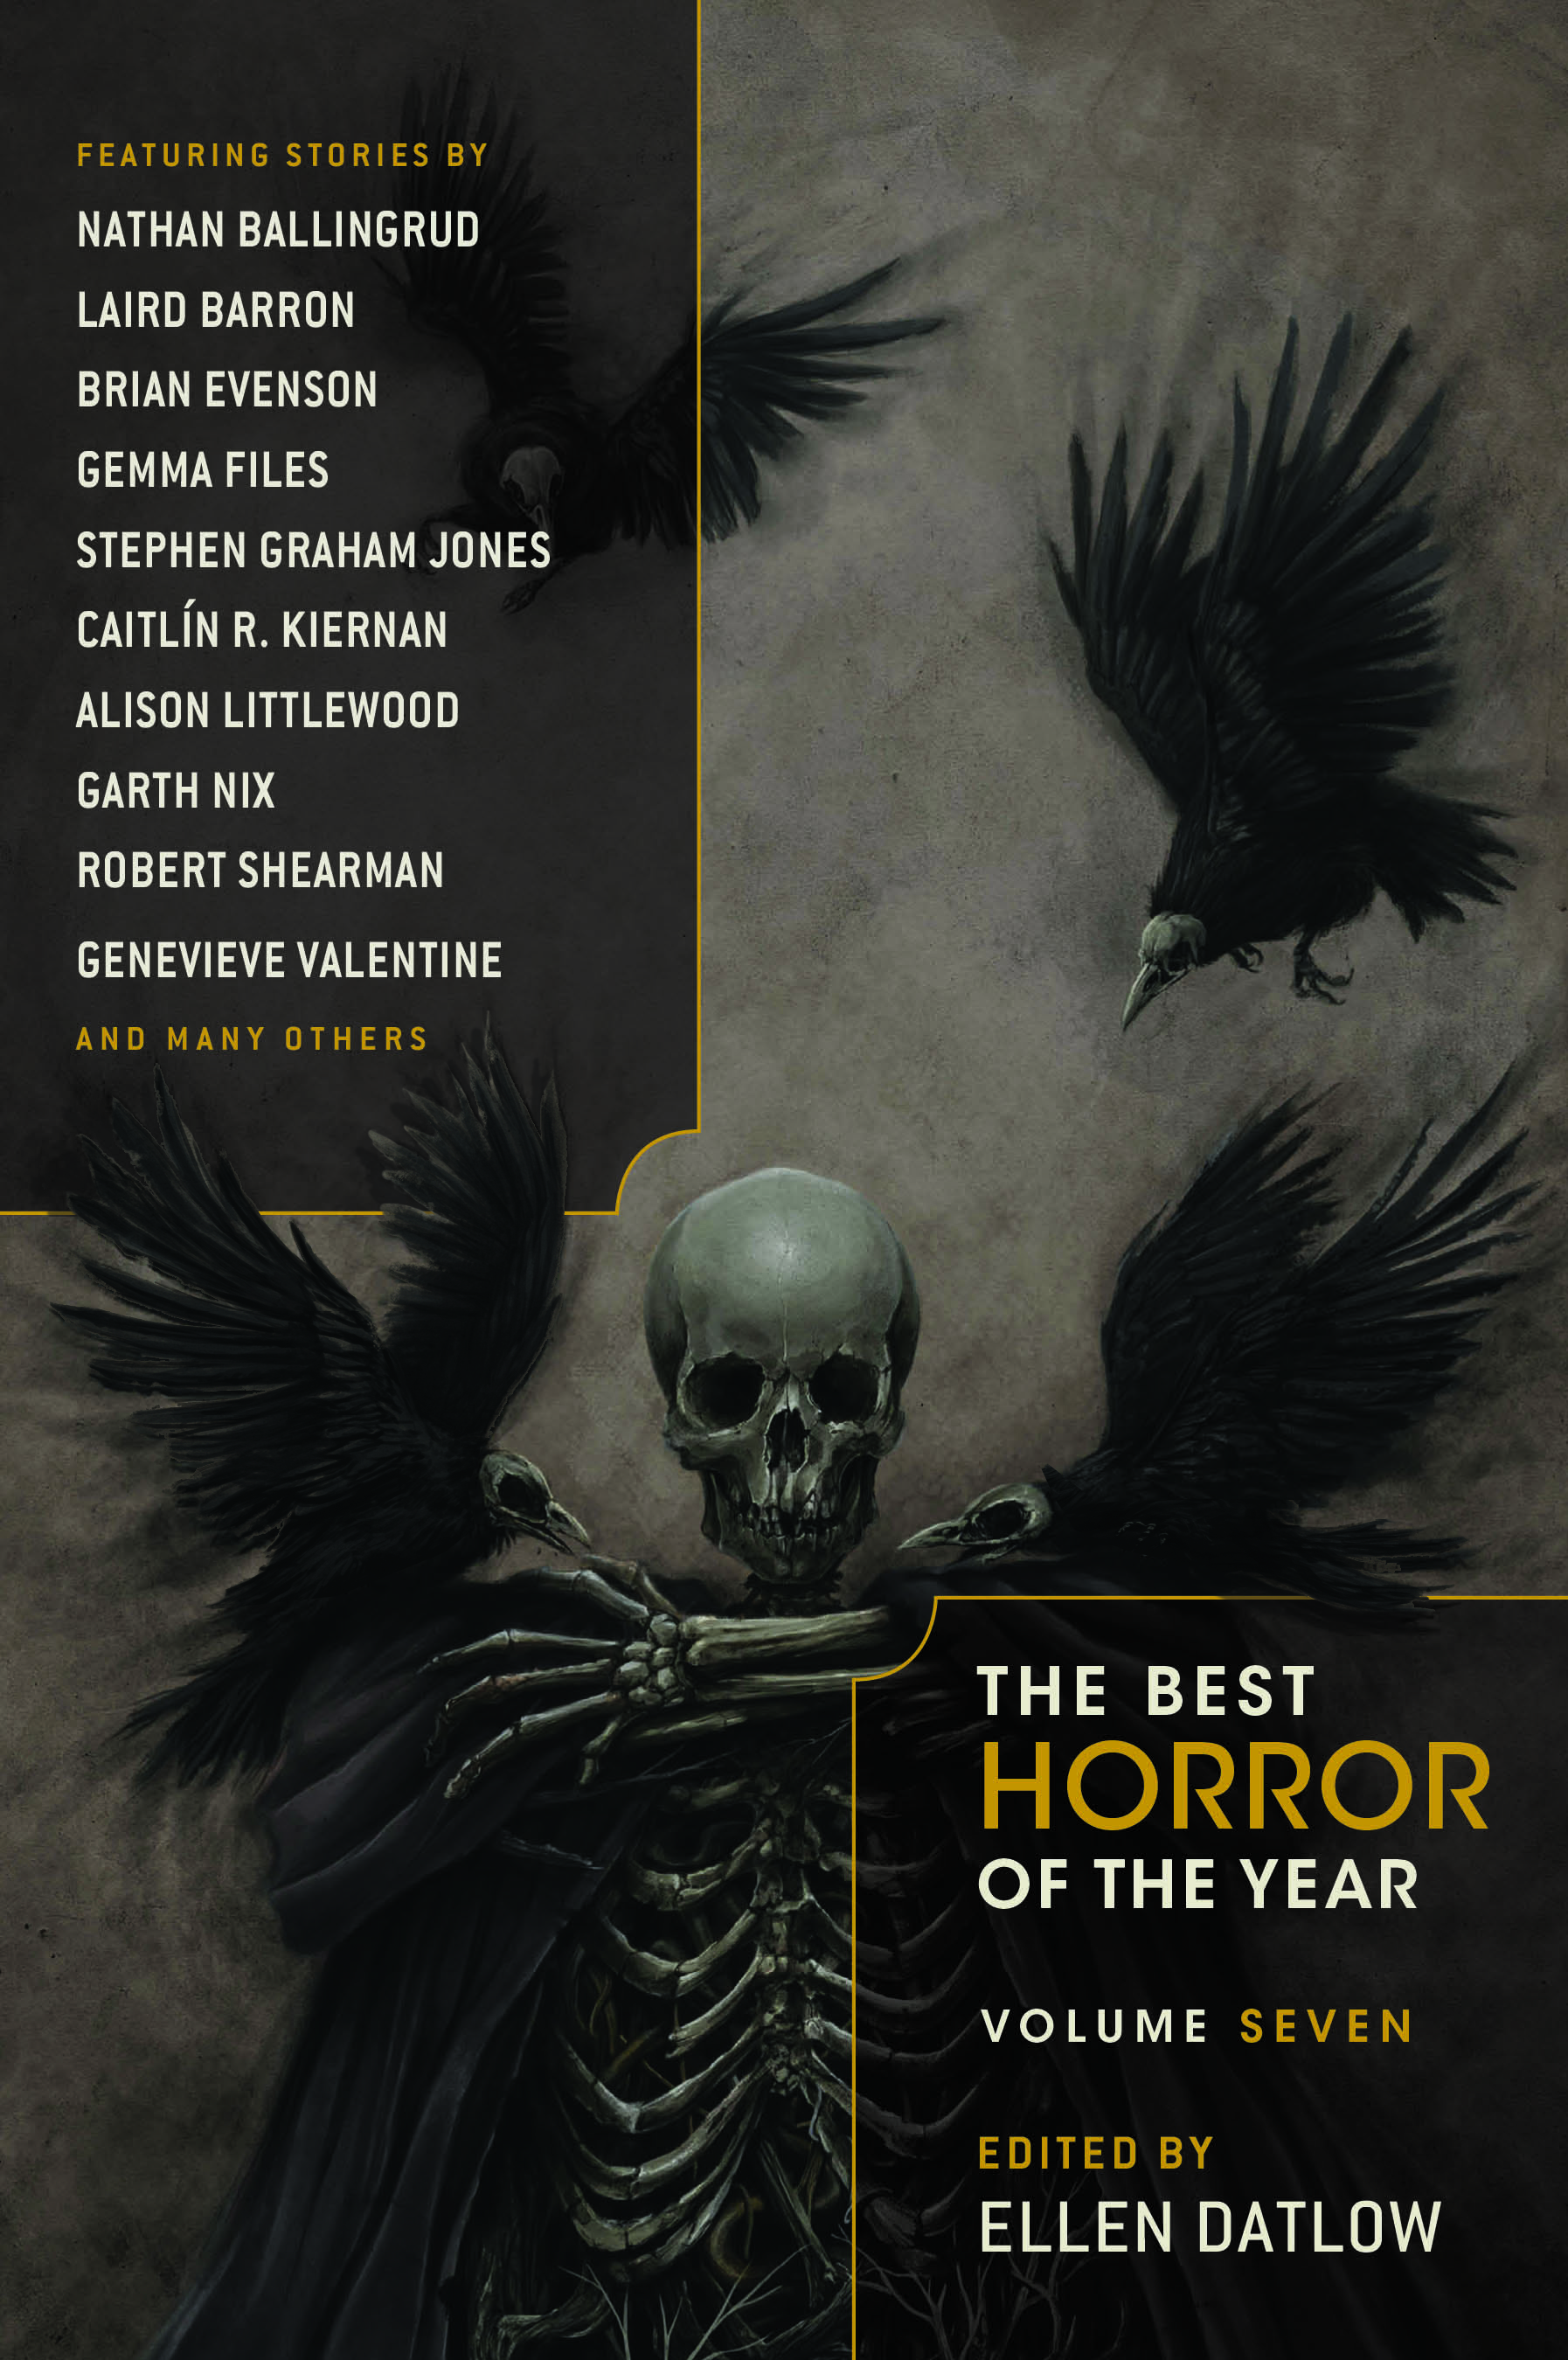 Best Horror vol 7 final cover